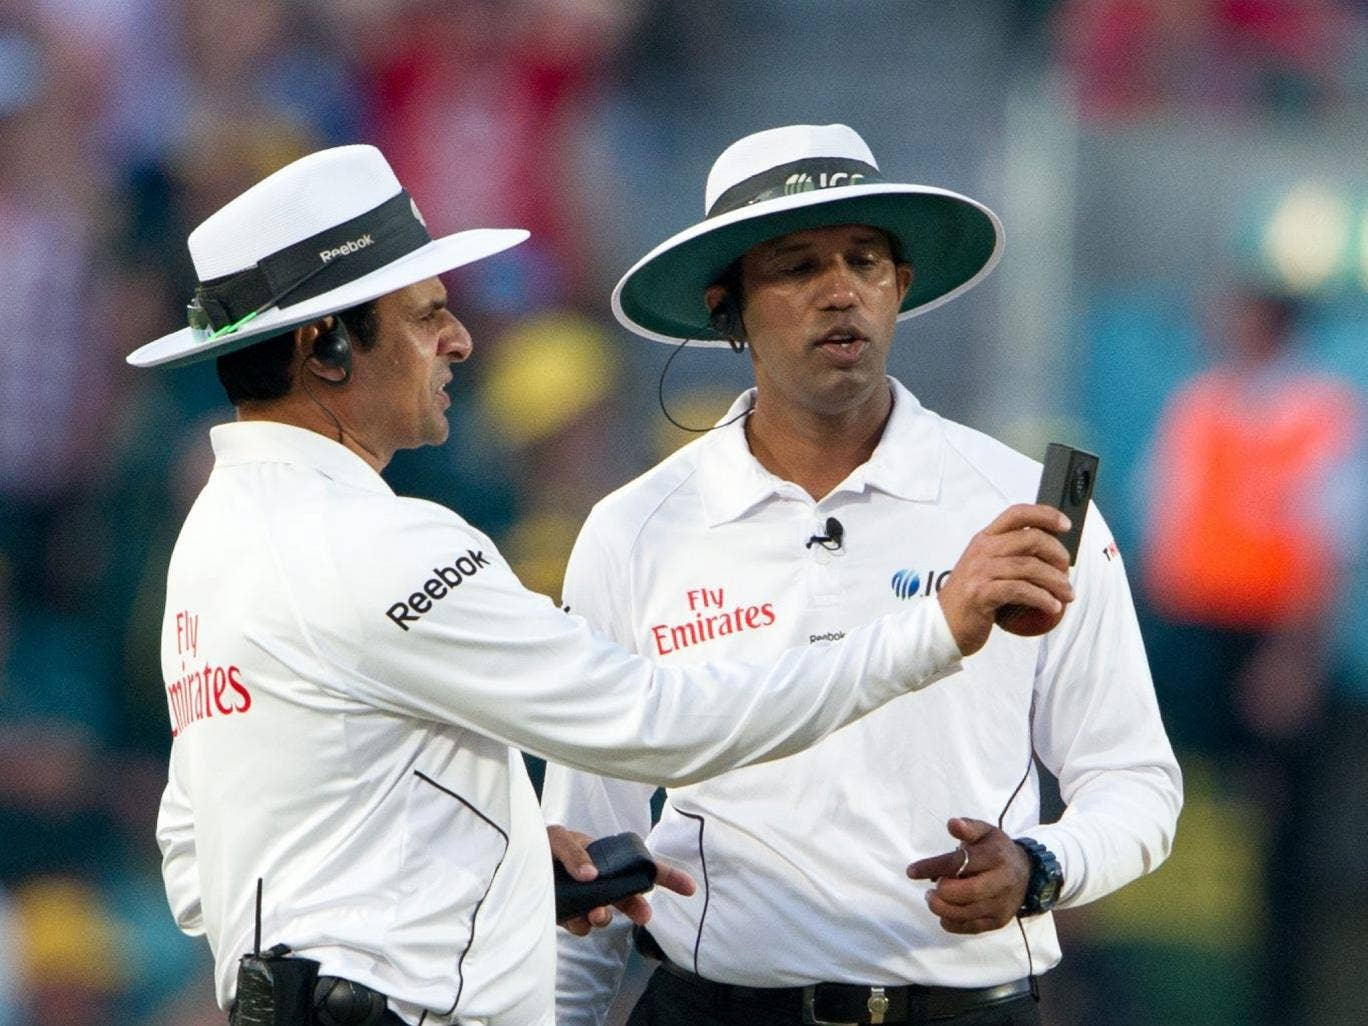 Aleem Dar (right) and Kumar Dharmasena debate the light at The Oval